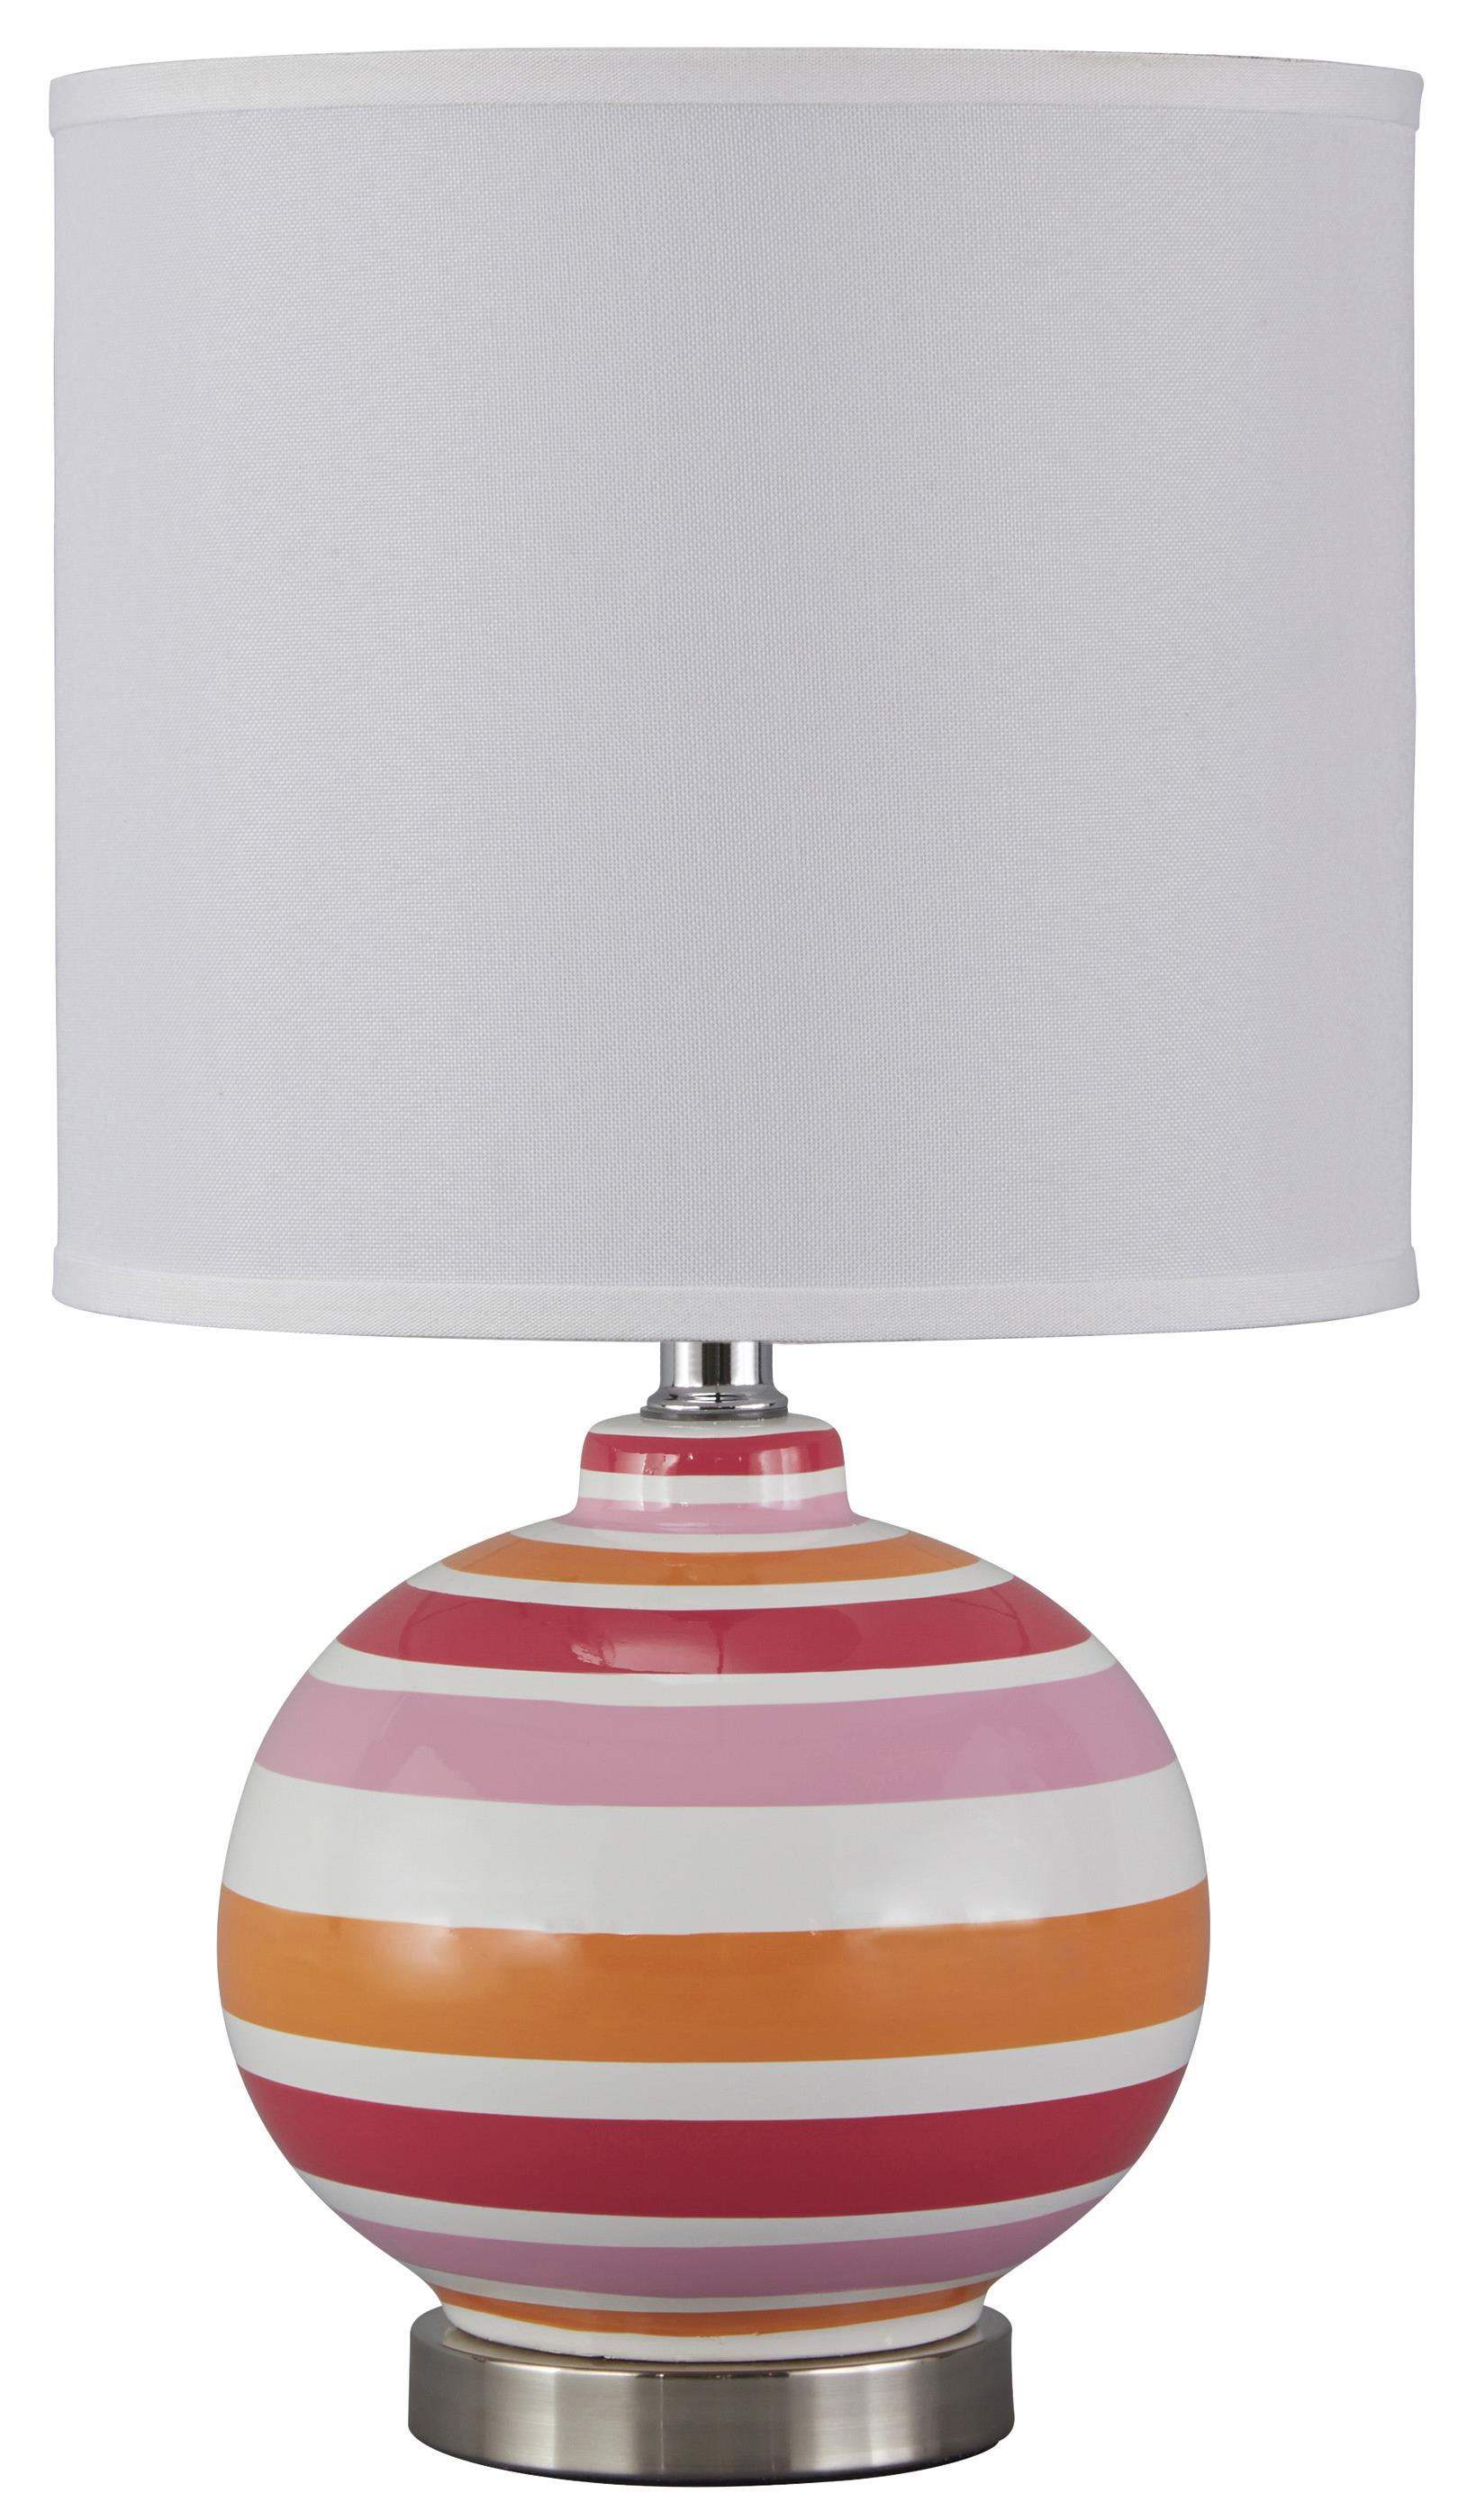 Signature Design by Ashley Lamps - Contemporary Sirene Ceramic Table Lamp - Item Number: L857474